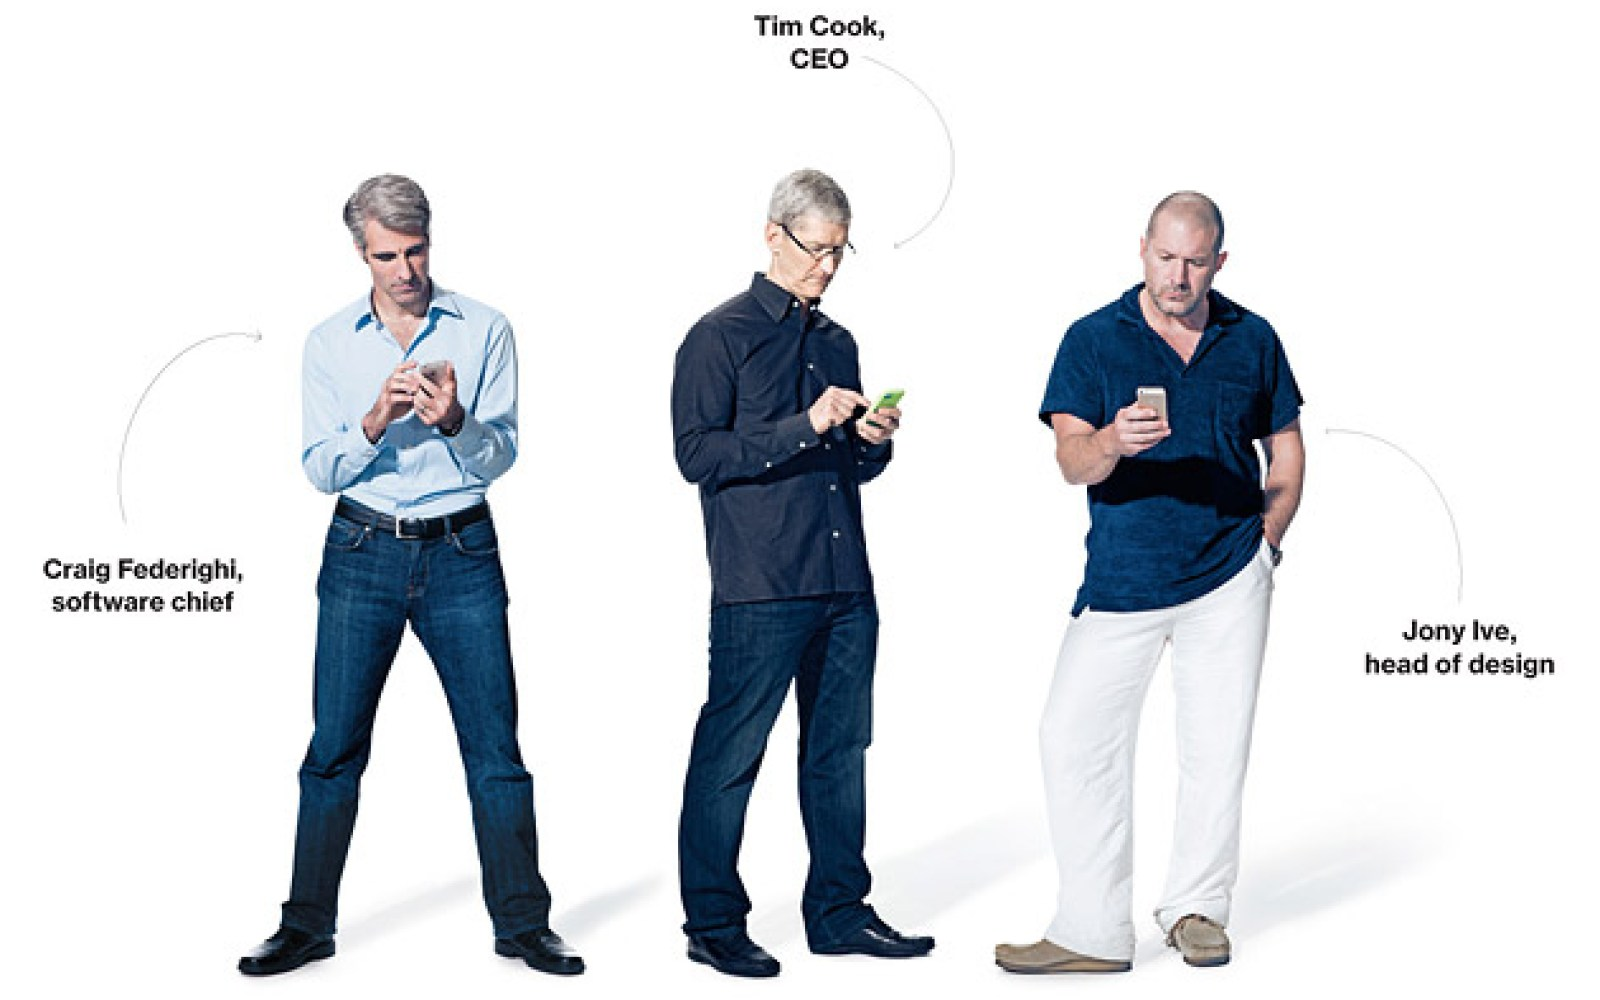 Tim Cook, Jony Ive, Craig Federighi talk new iPhones, iOS 7, collaboration in interview